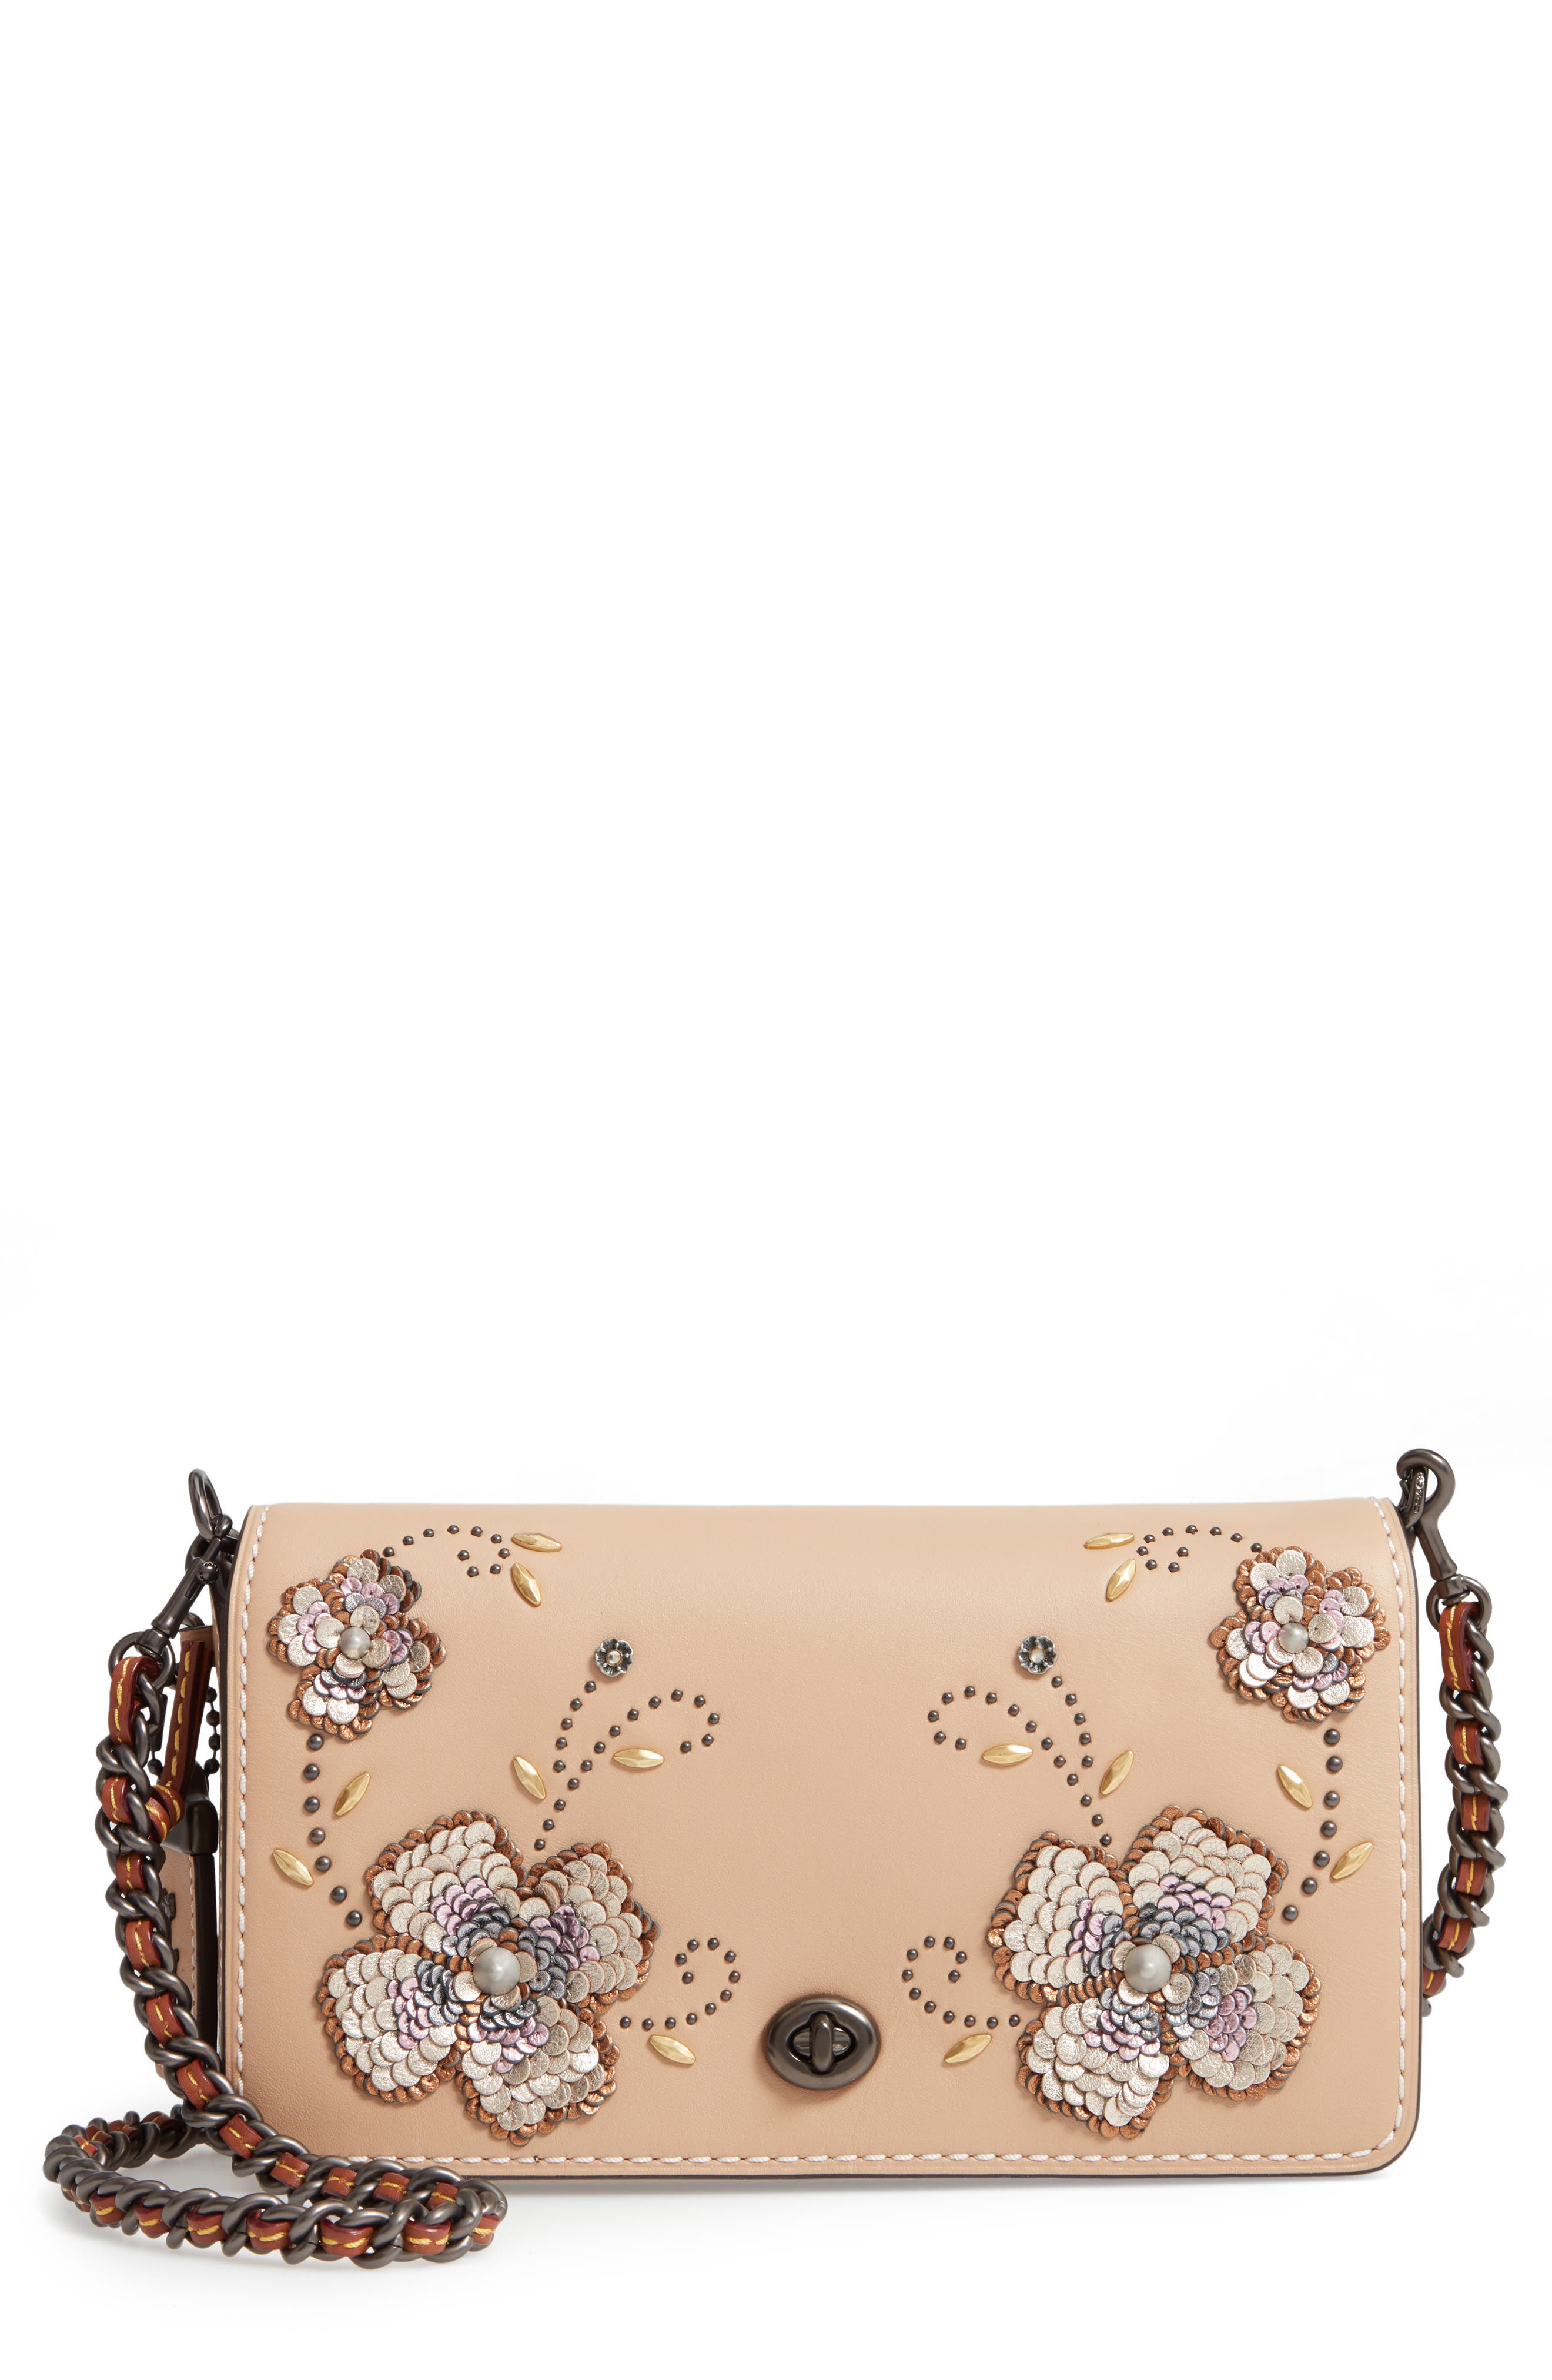 Dinky Leather Crossbody Sequin Bag,                         Main,                         color, BEECHWOOD